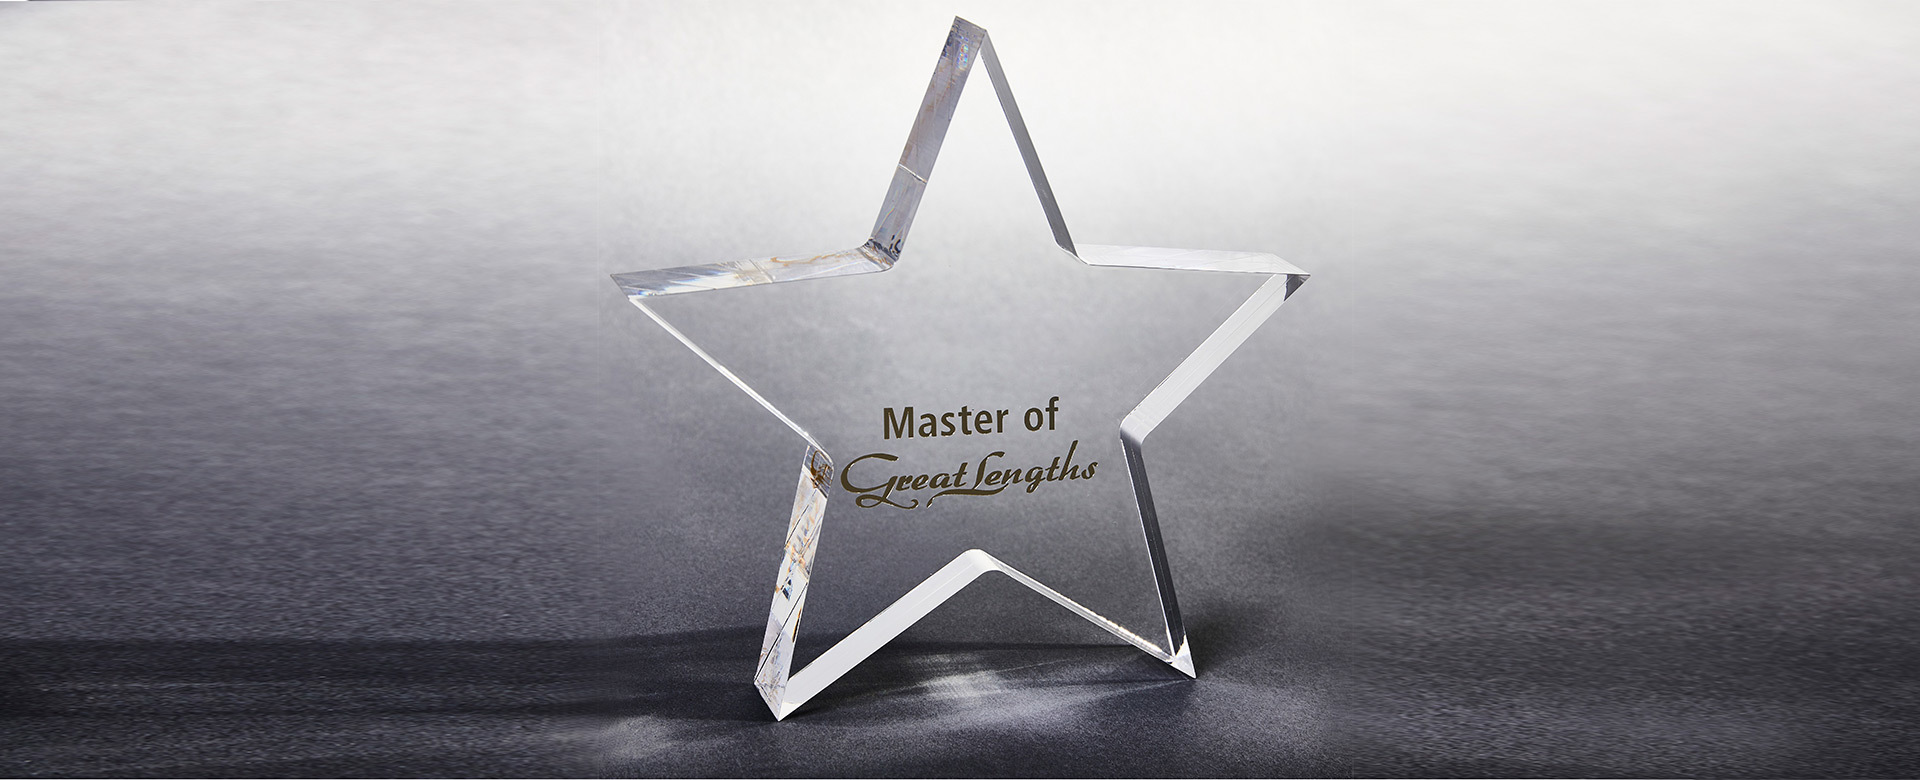 Master of Great Lengths Trophy (© Great Lengths)